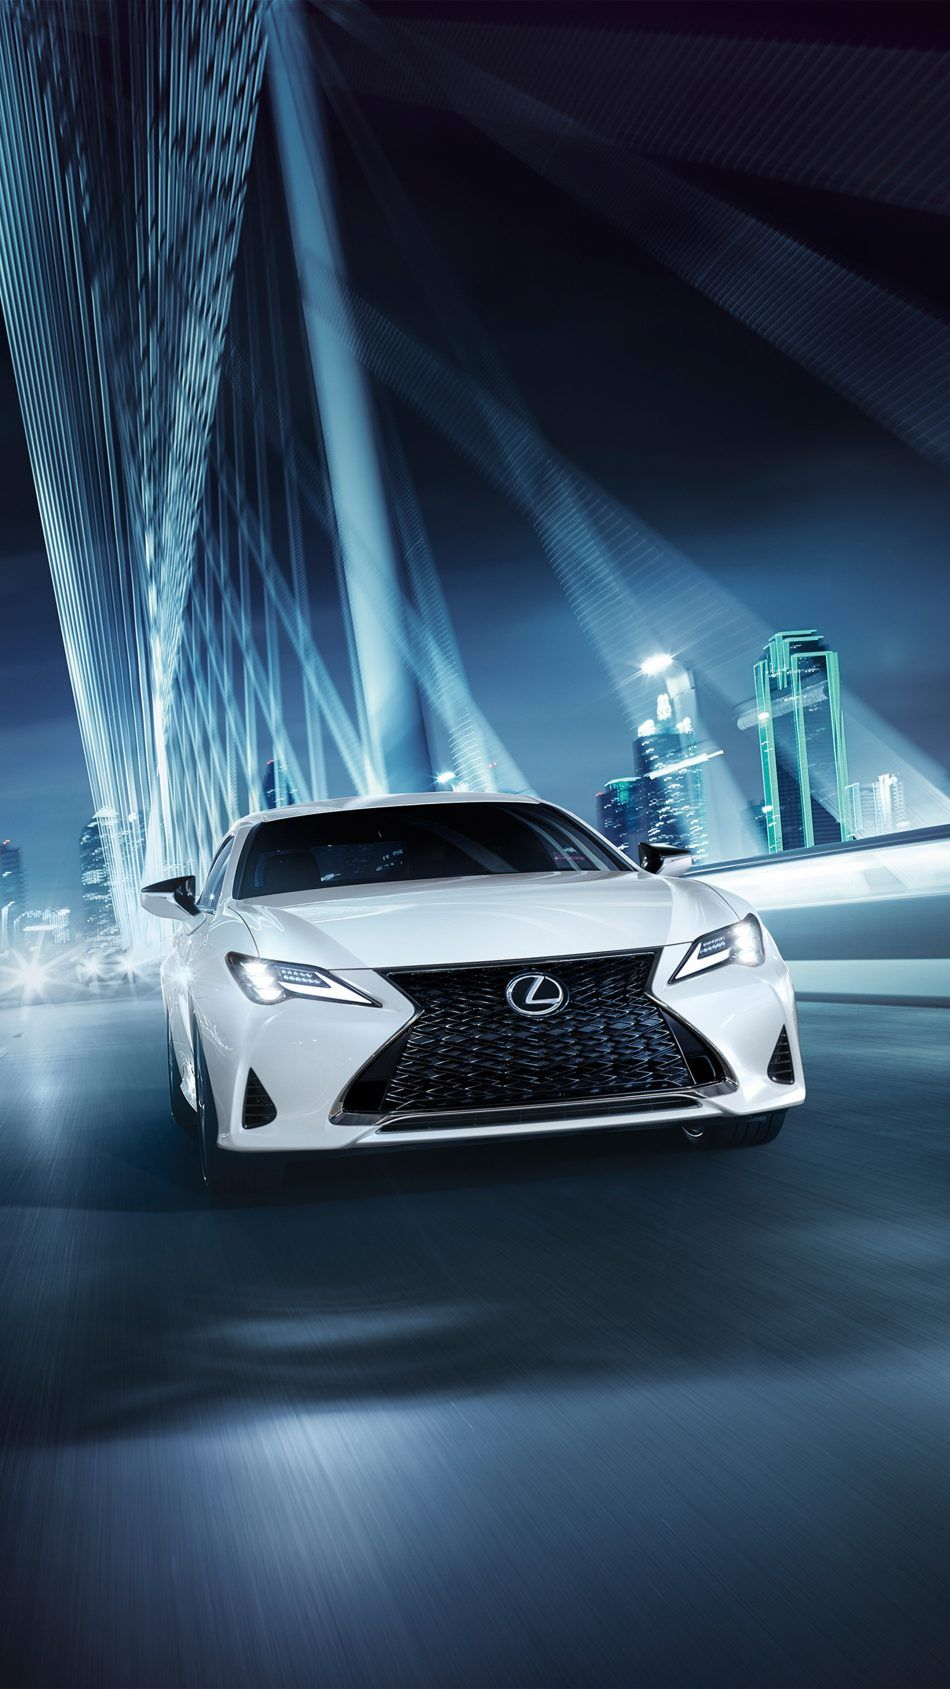 Lexus Rc 350 F Sport Bmw Classic Cars Car Wallpapers Lexus Cars